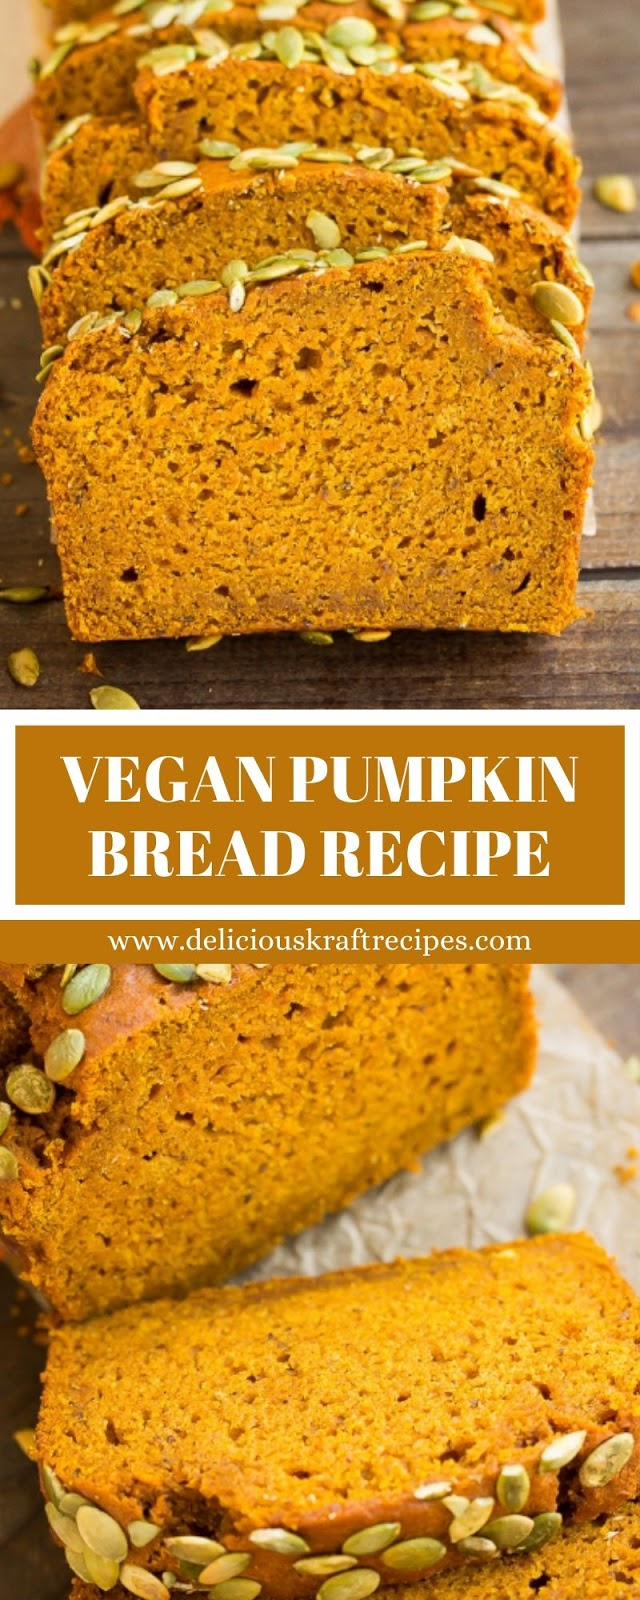 VEGAN PUMPKIN BREAD RECIPE